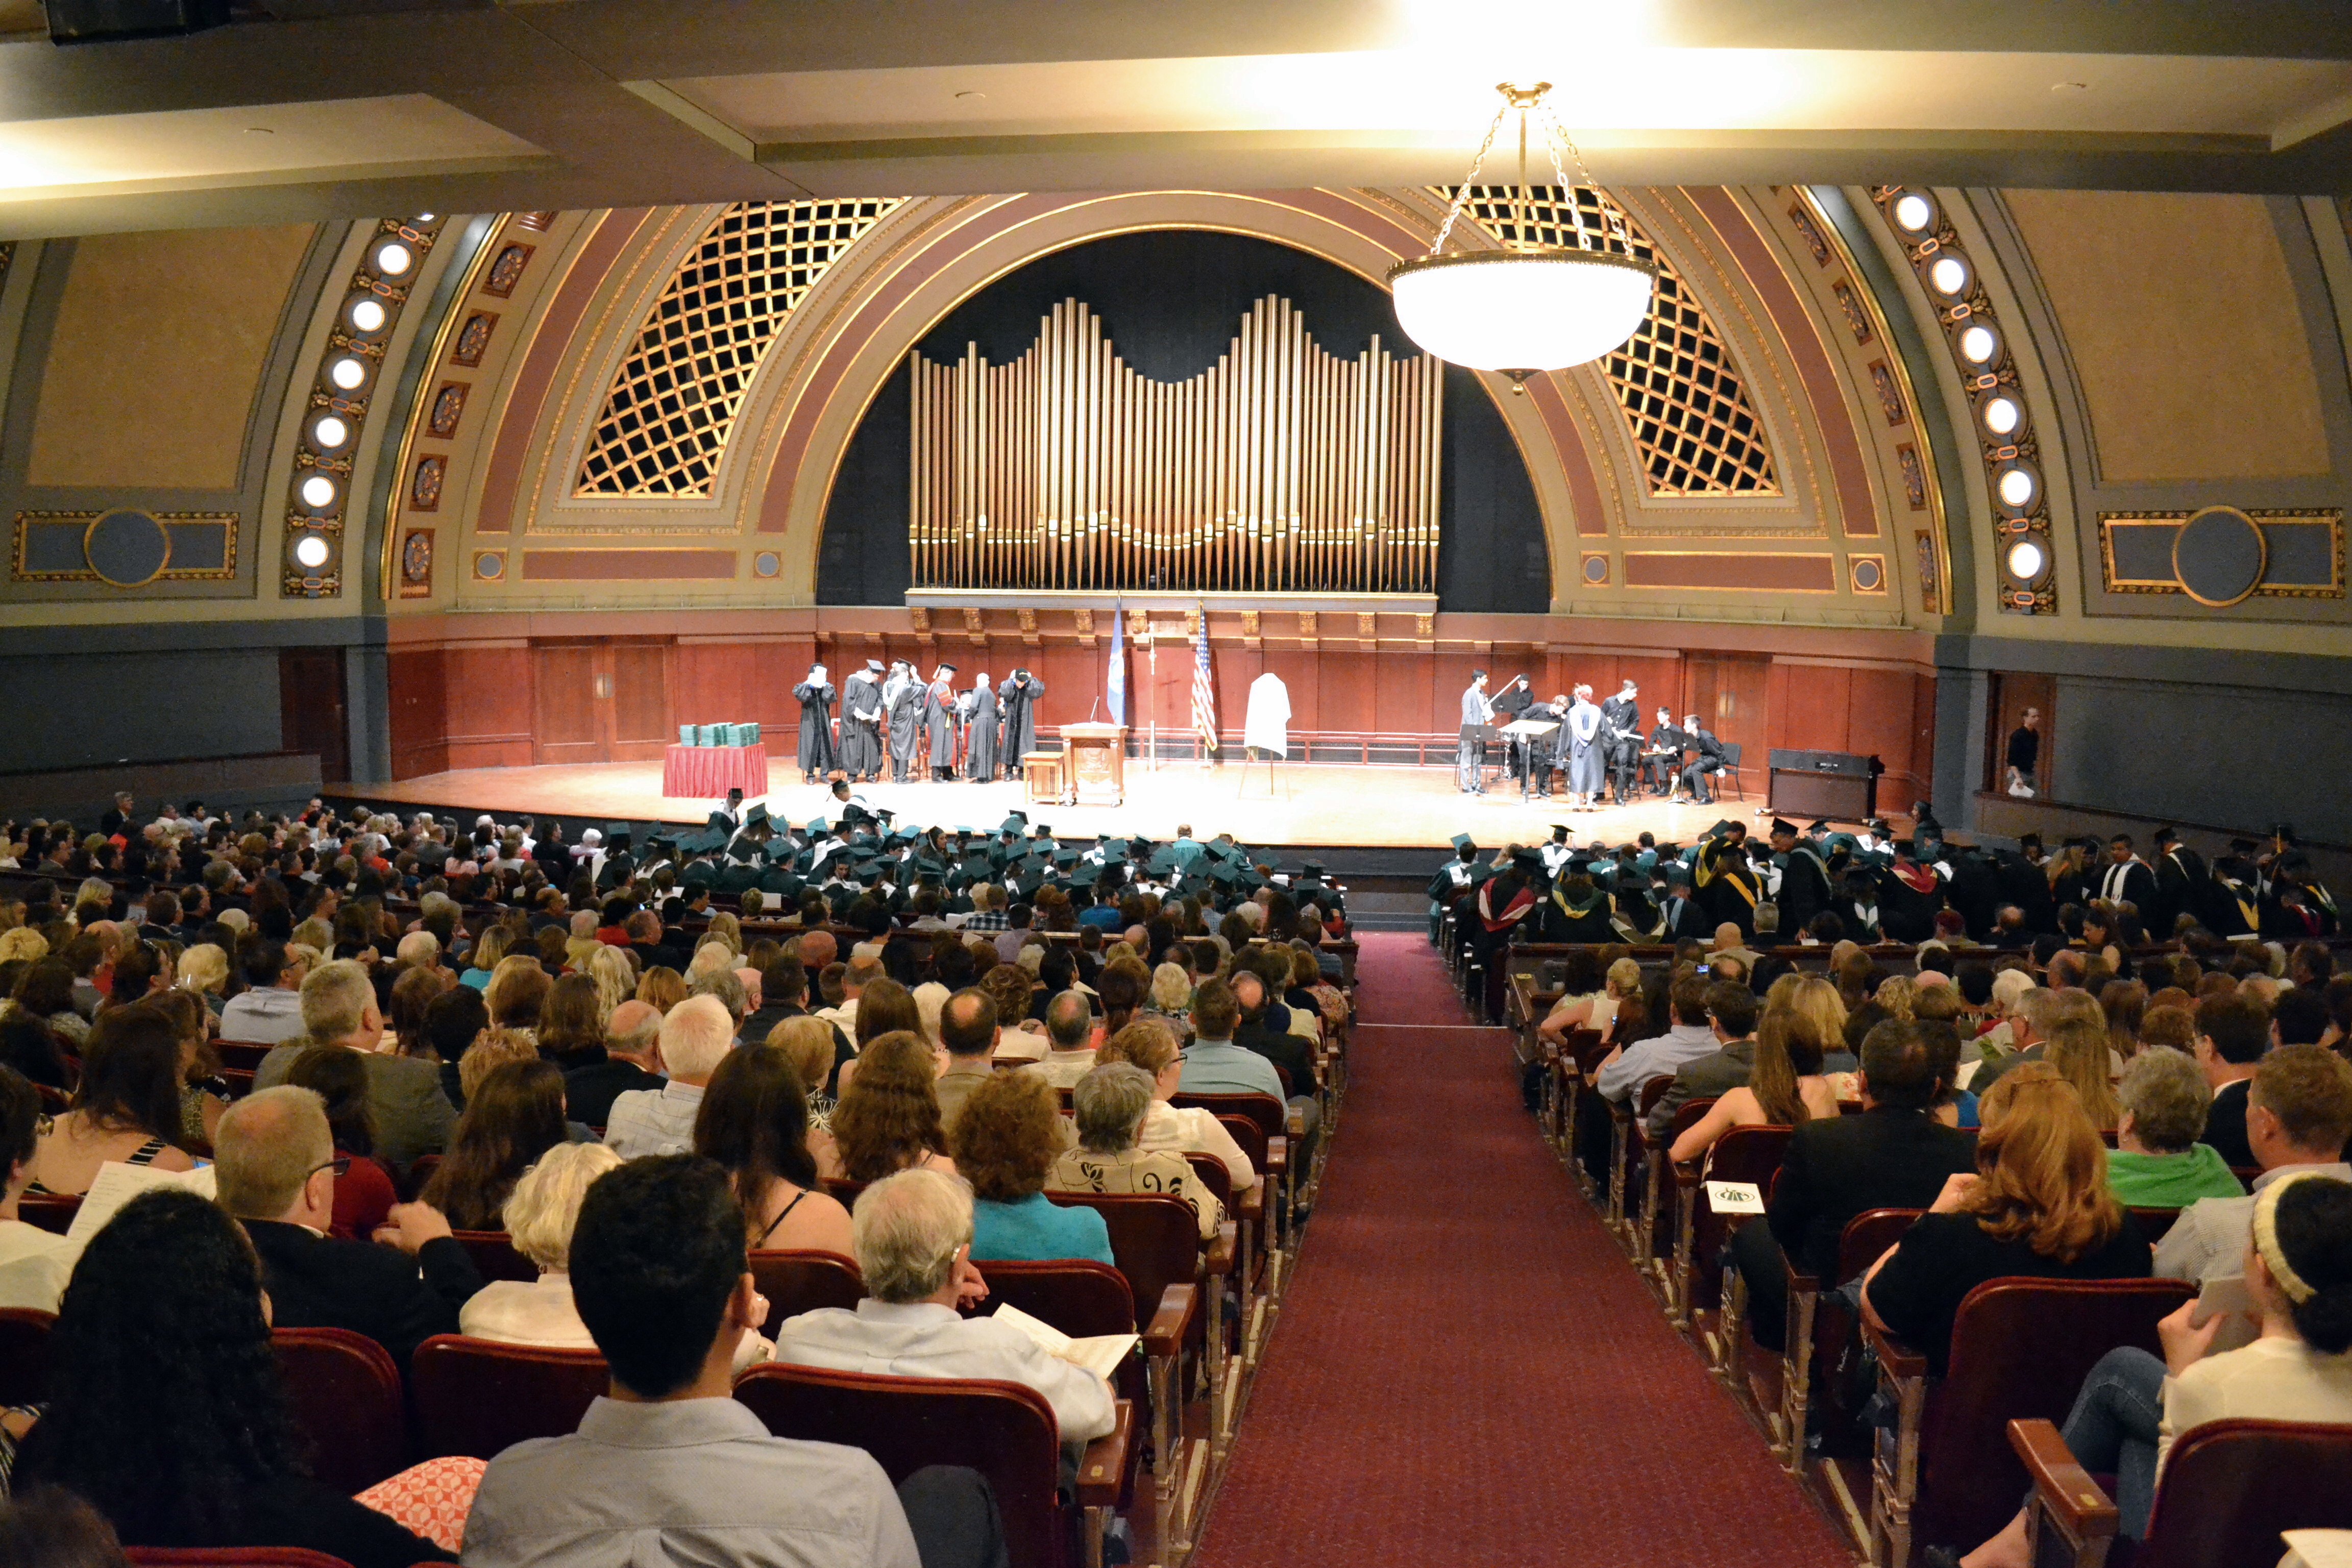 Hill Auditorium on Graduation Day.